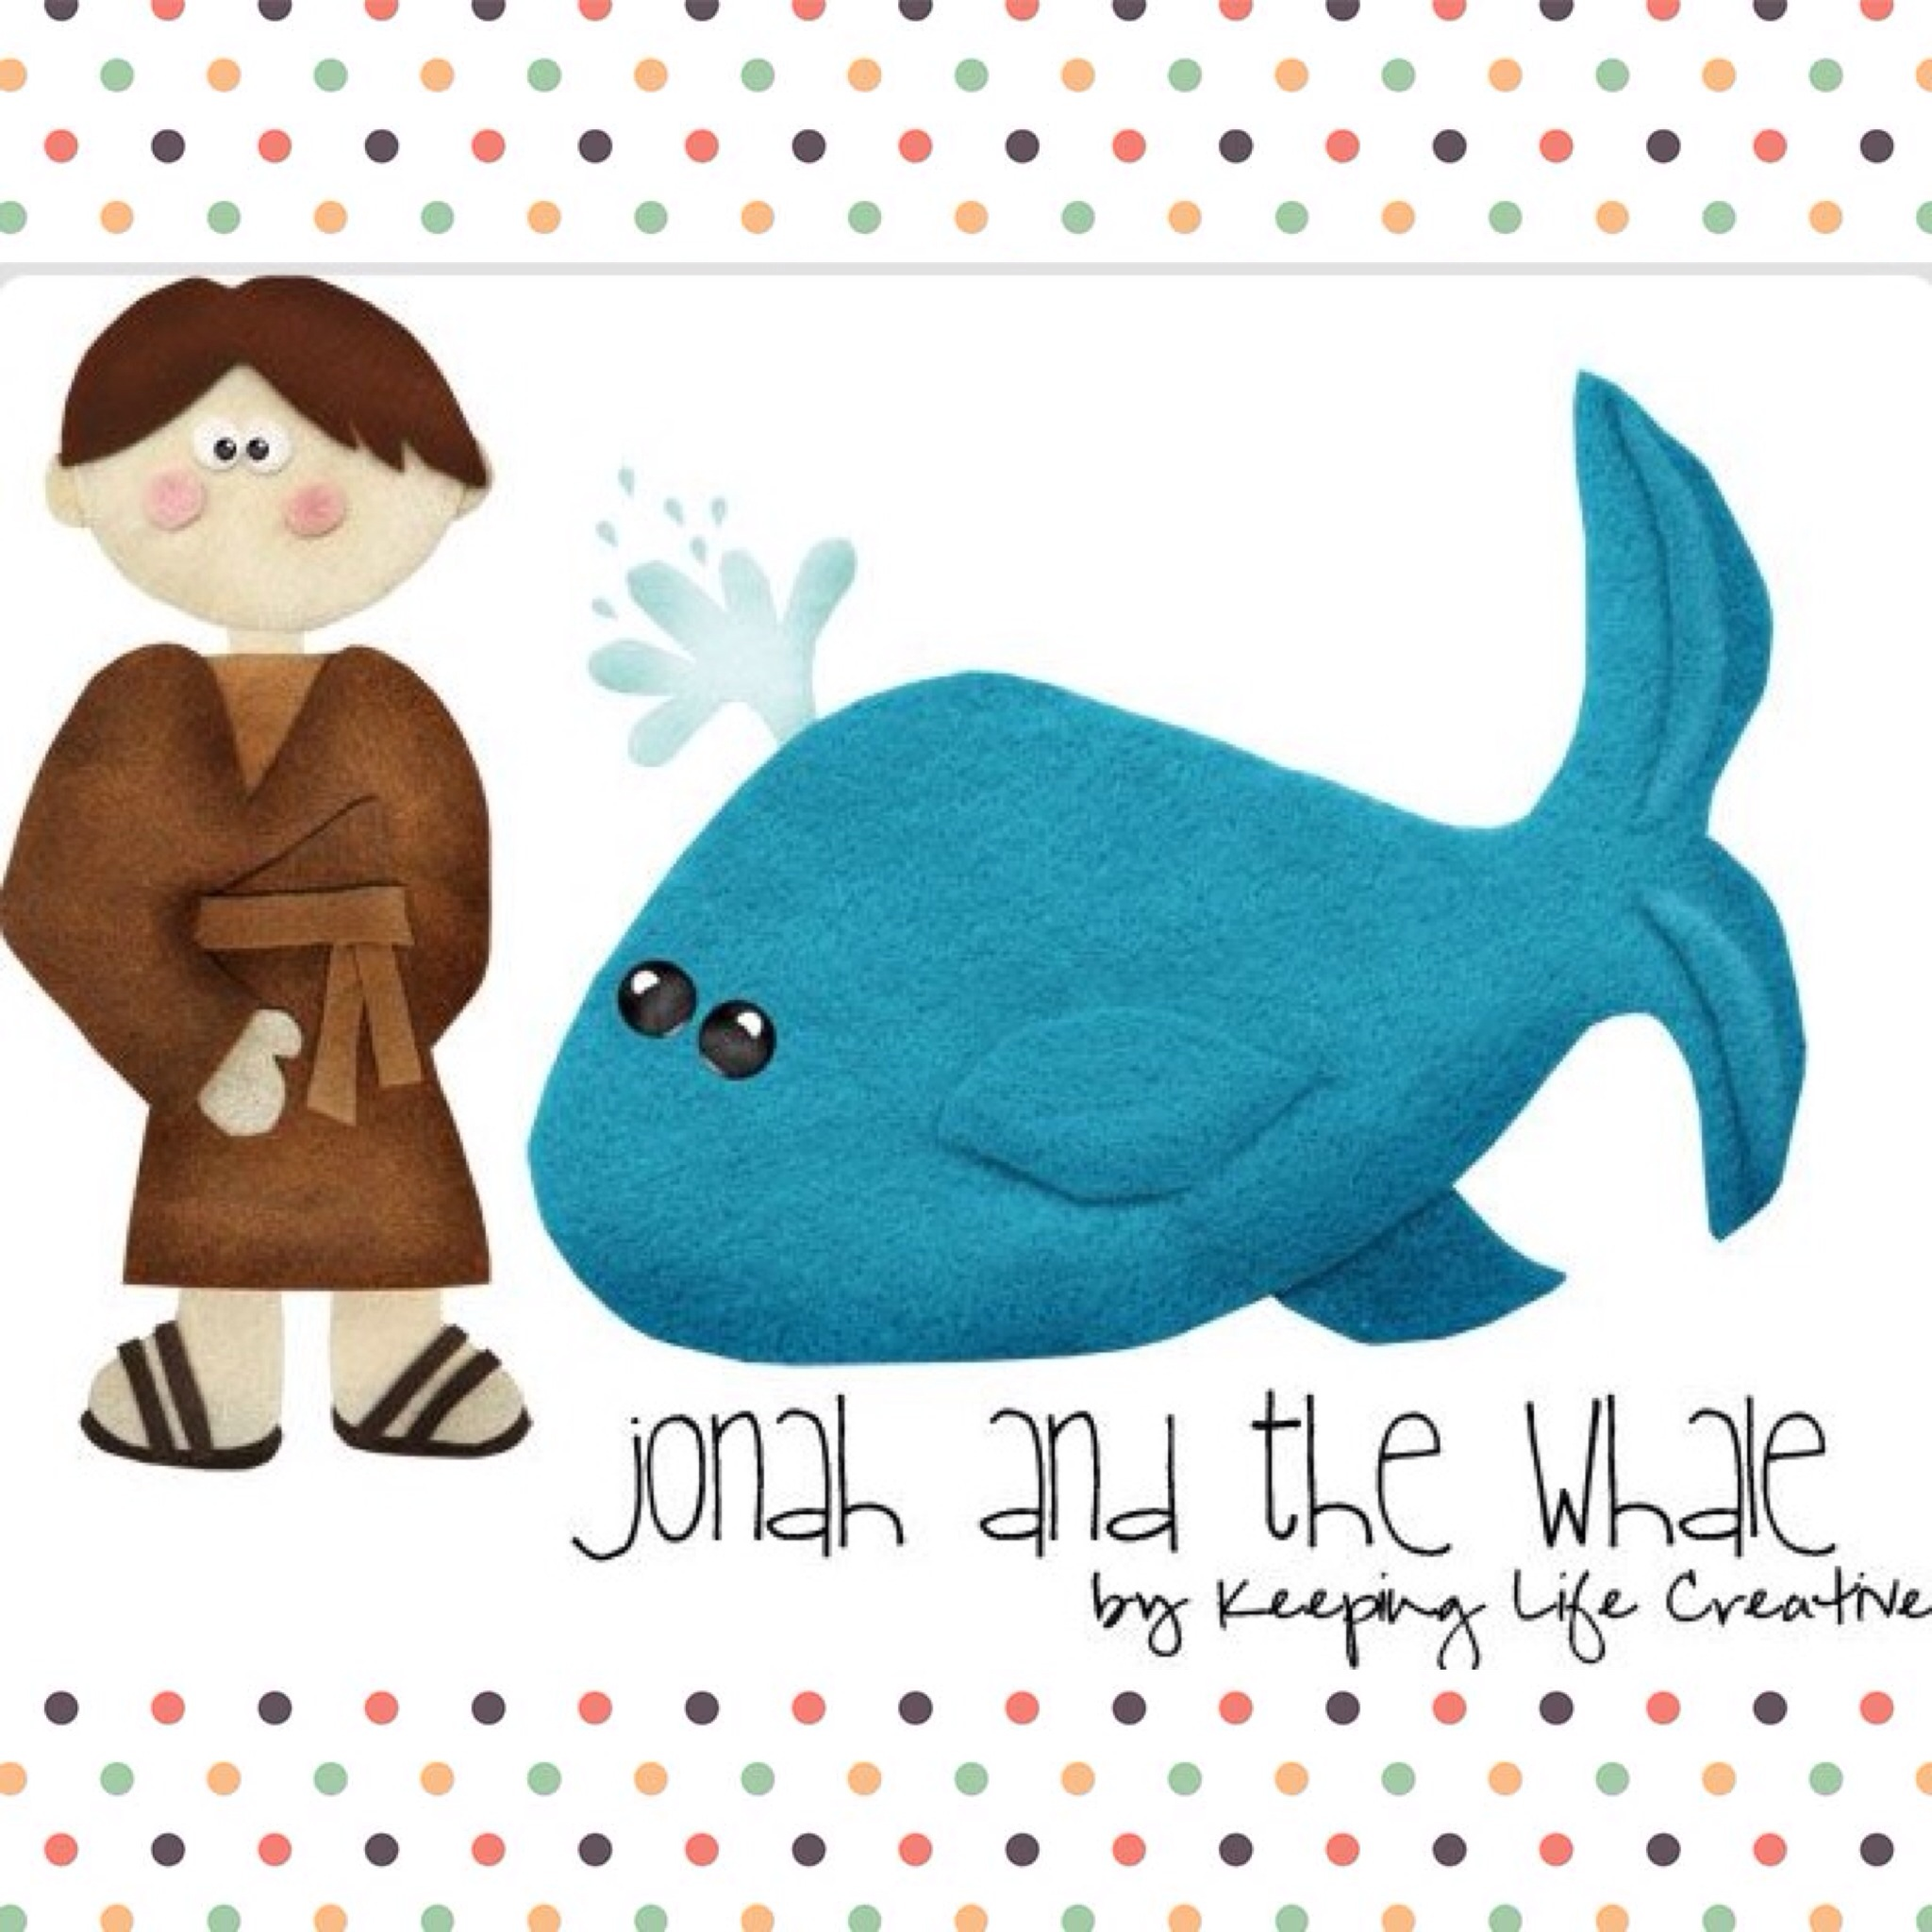 Jonah sunday school craft - We Learned How Jonah Was Playing Hide And Seek With God But The Only Difference Was That Jonah Was Not Having Fun At All We Cannot Hide Anything From God